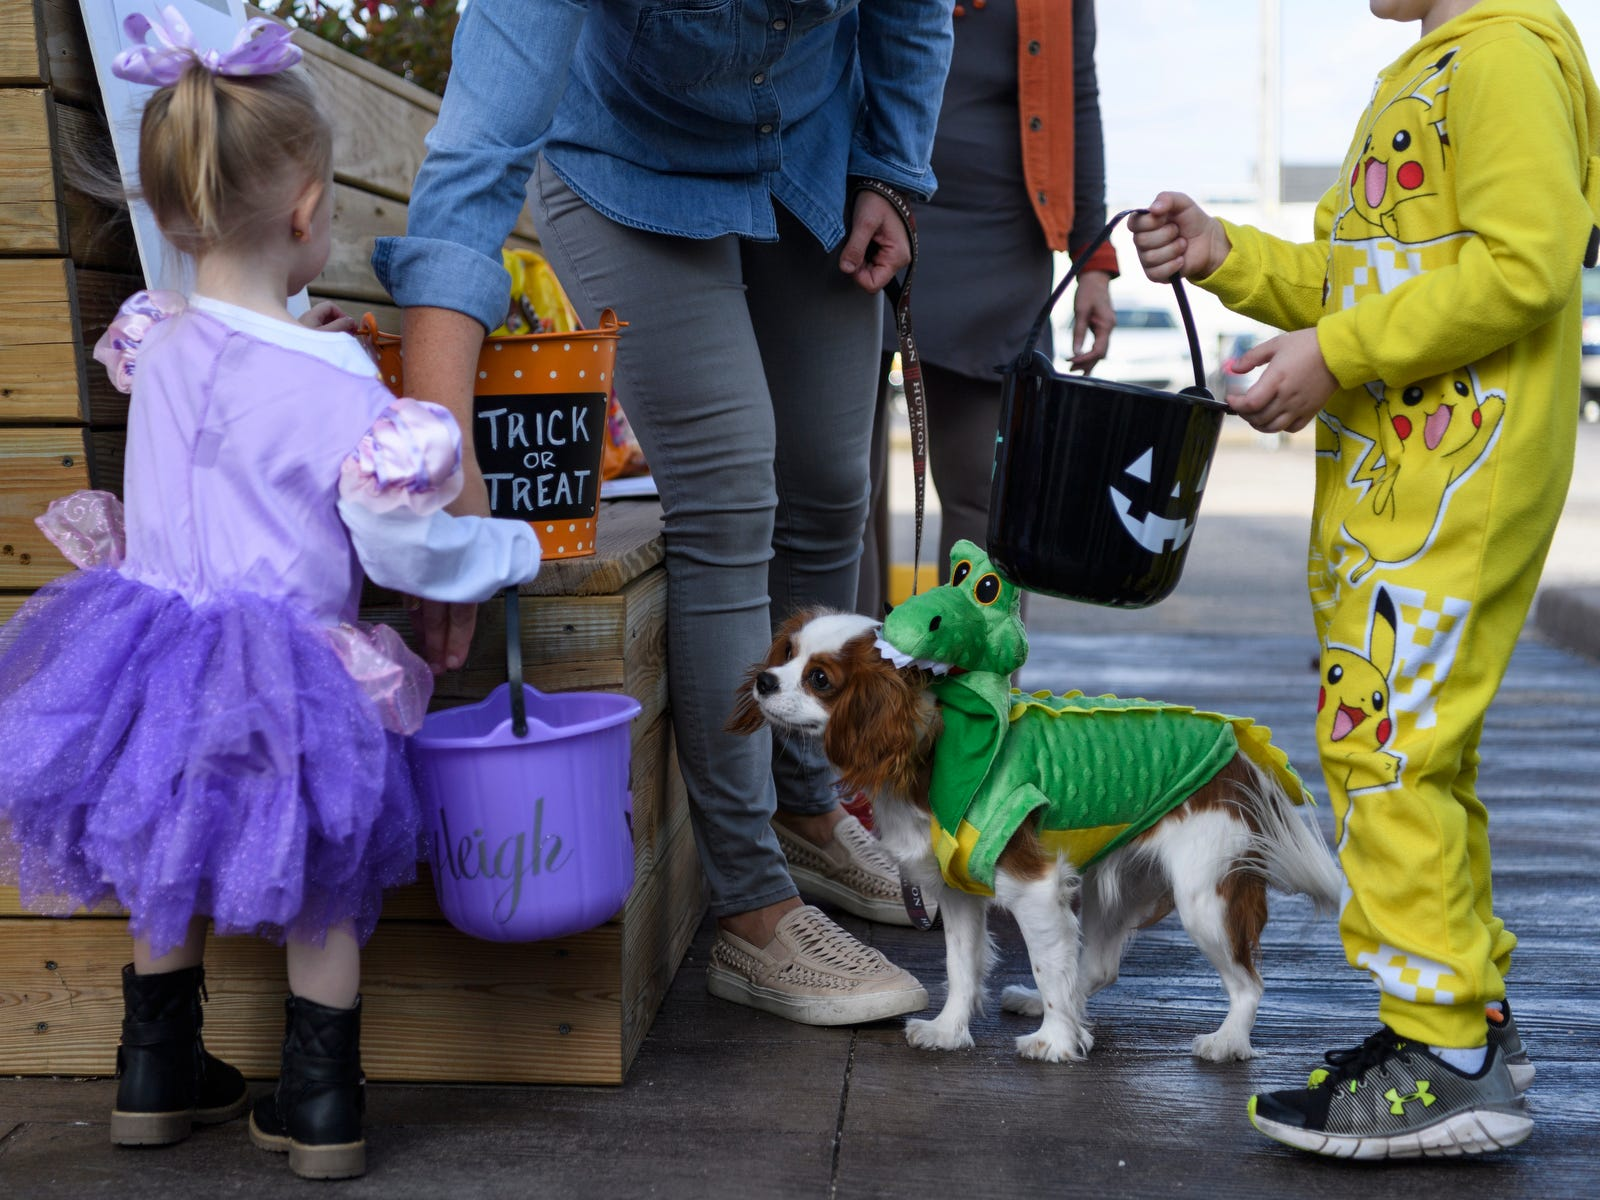 Charley, Lindsay Locasto's dog, supervises the candy giving during the trick-or-treat event along Second Street in downtown Henderson, Ky., Tuesday, Oct. 30, 2018.